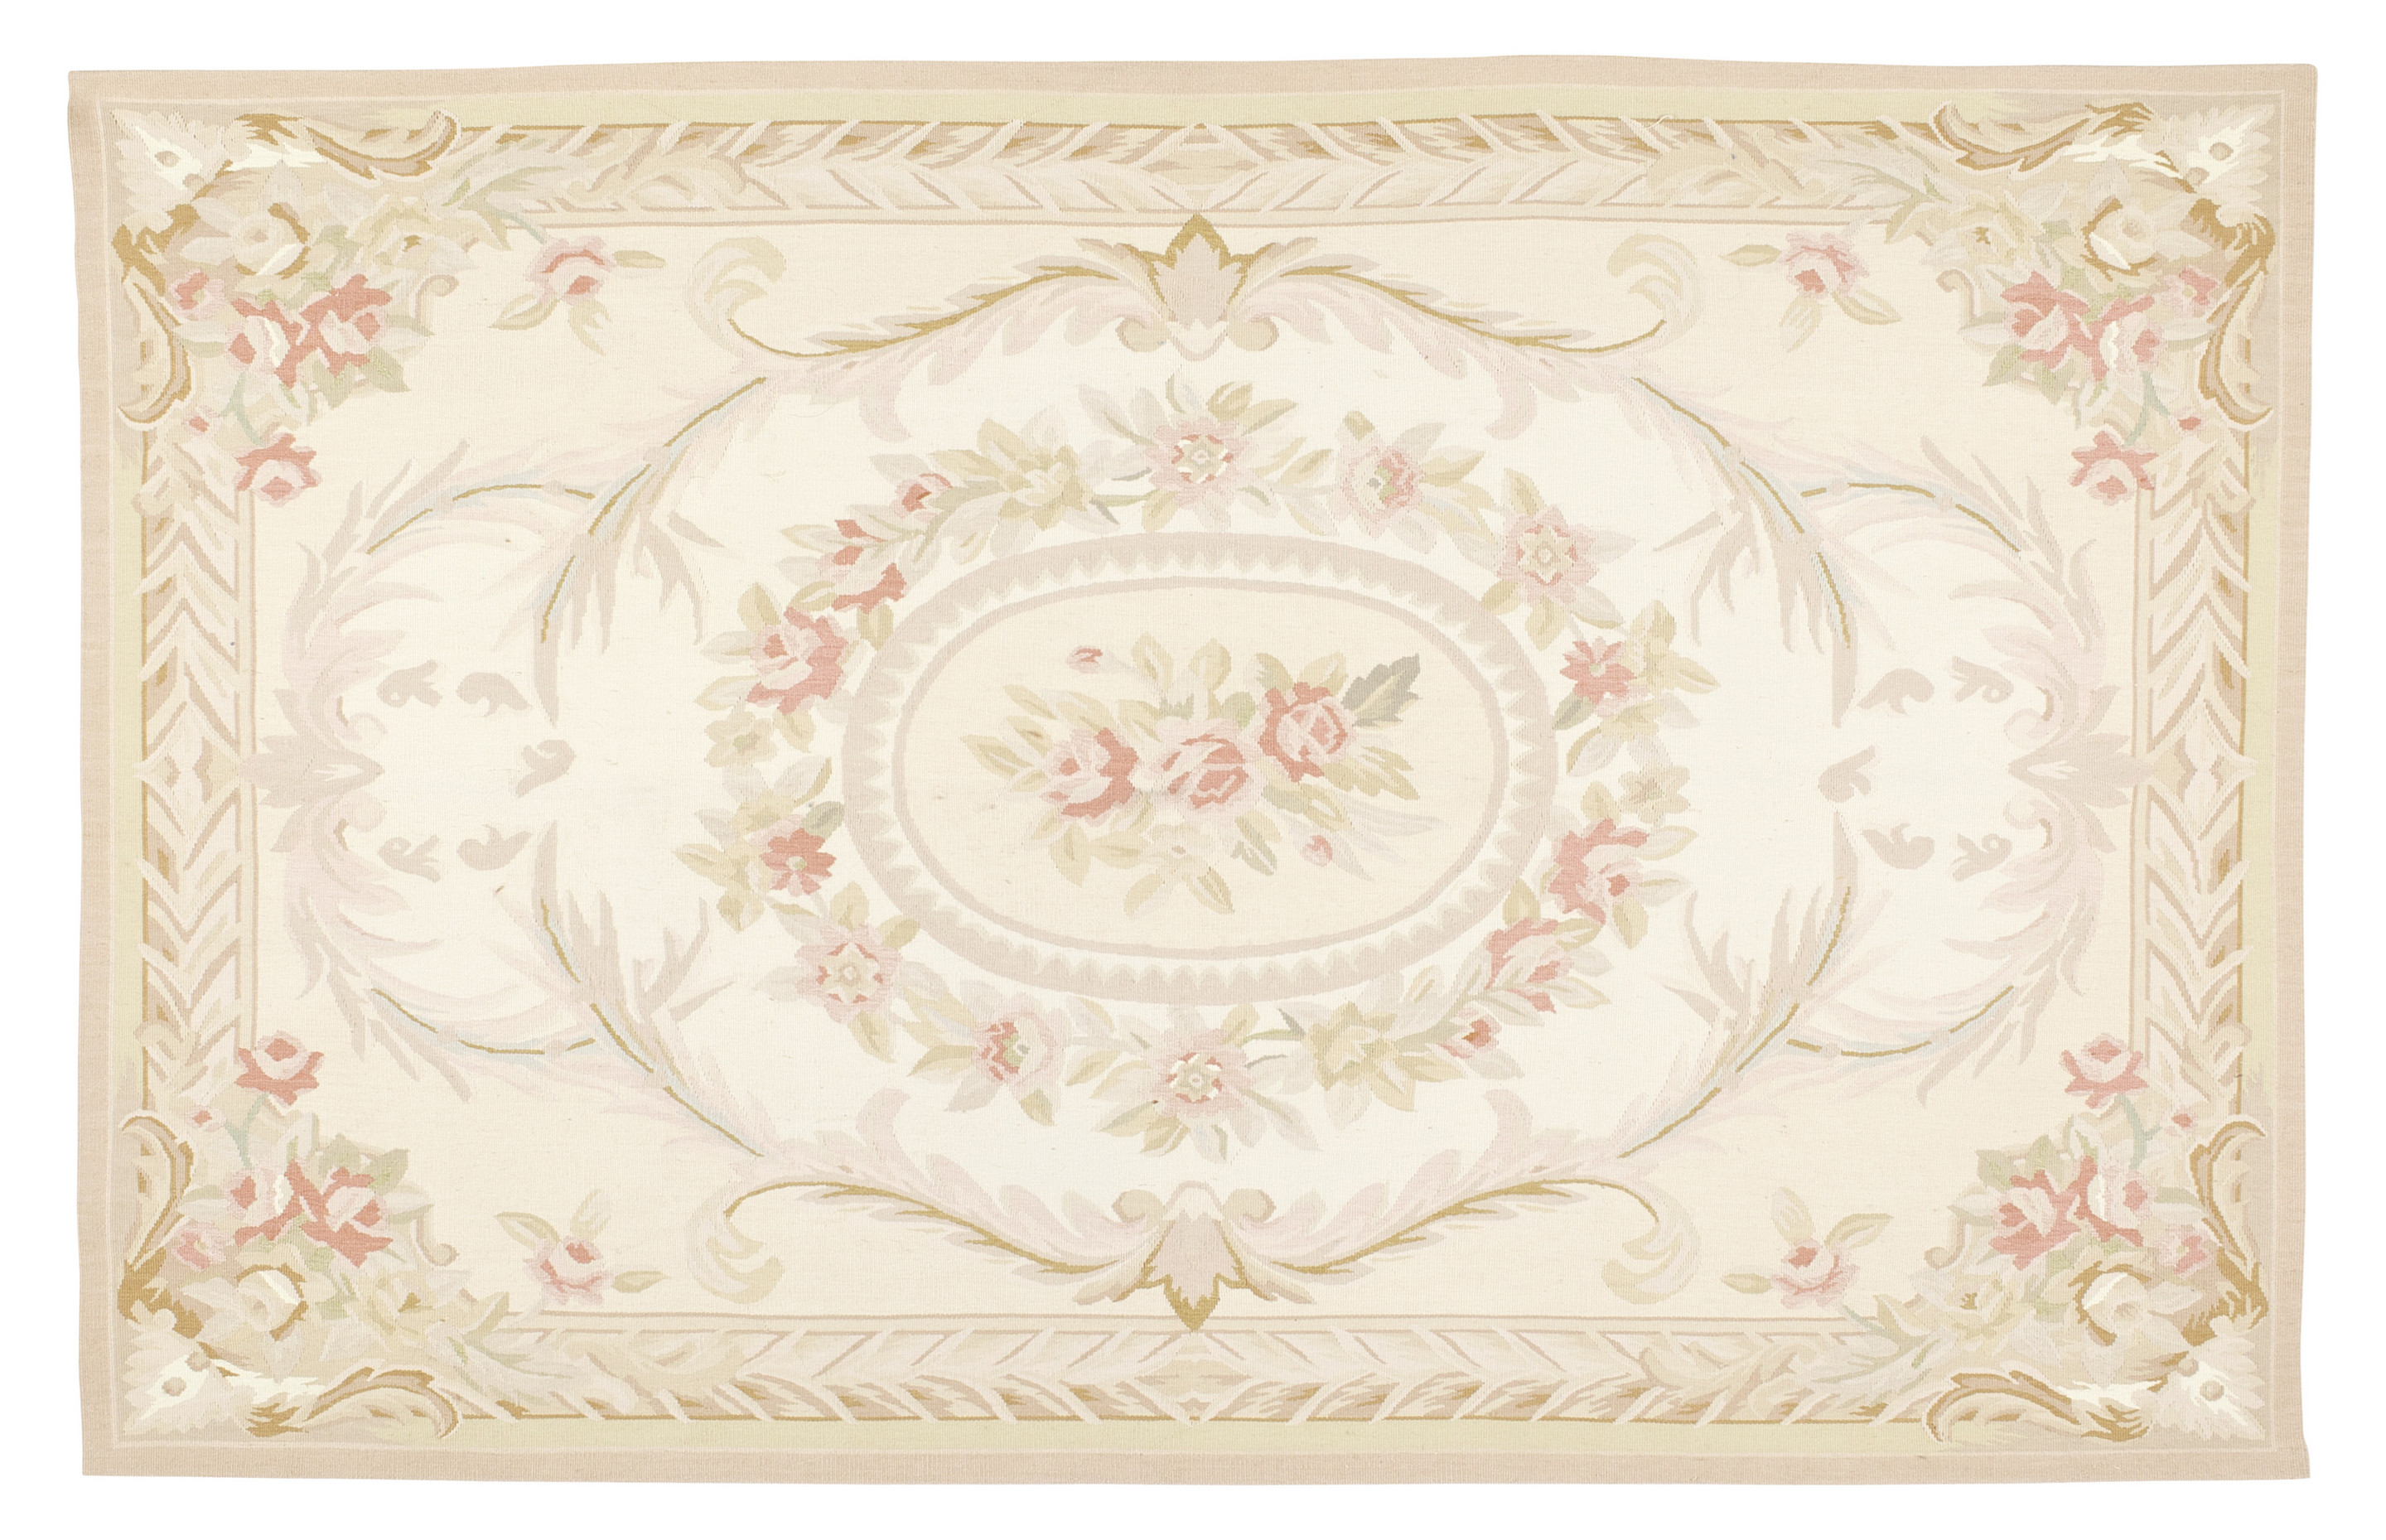 Cozy French Rugs Aubusson | Outstanding Aubusson Rugs